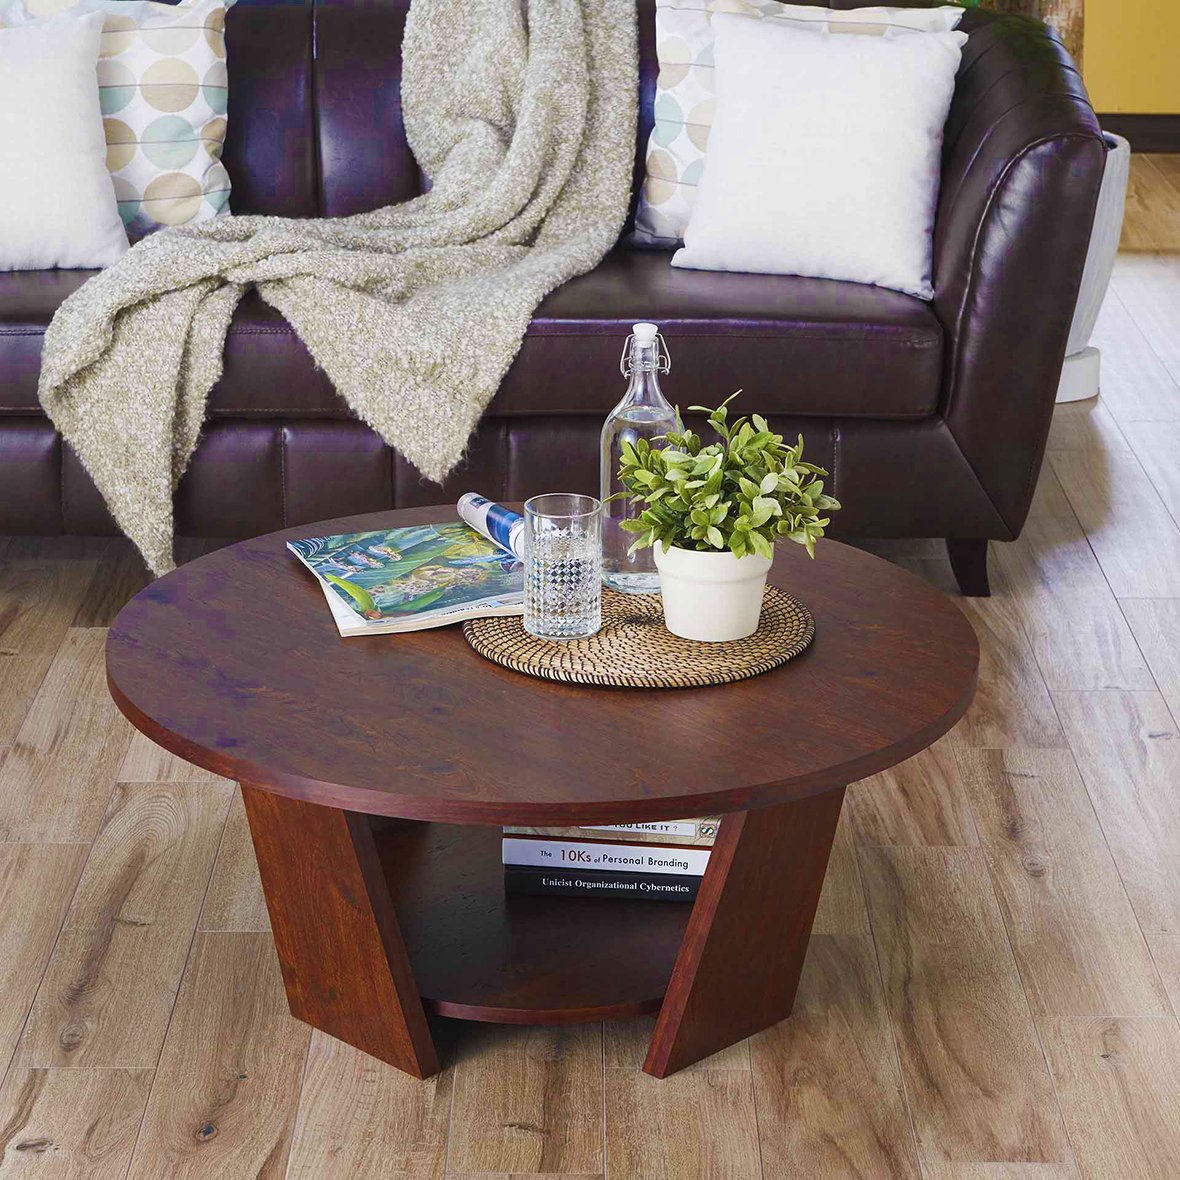 Easy DIY furniture makes your home fulfill many different feelings